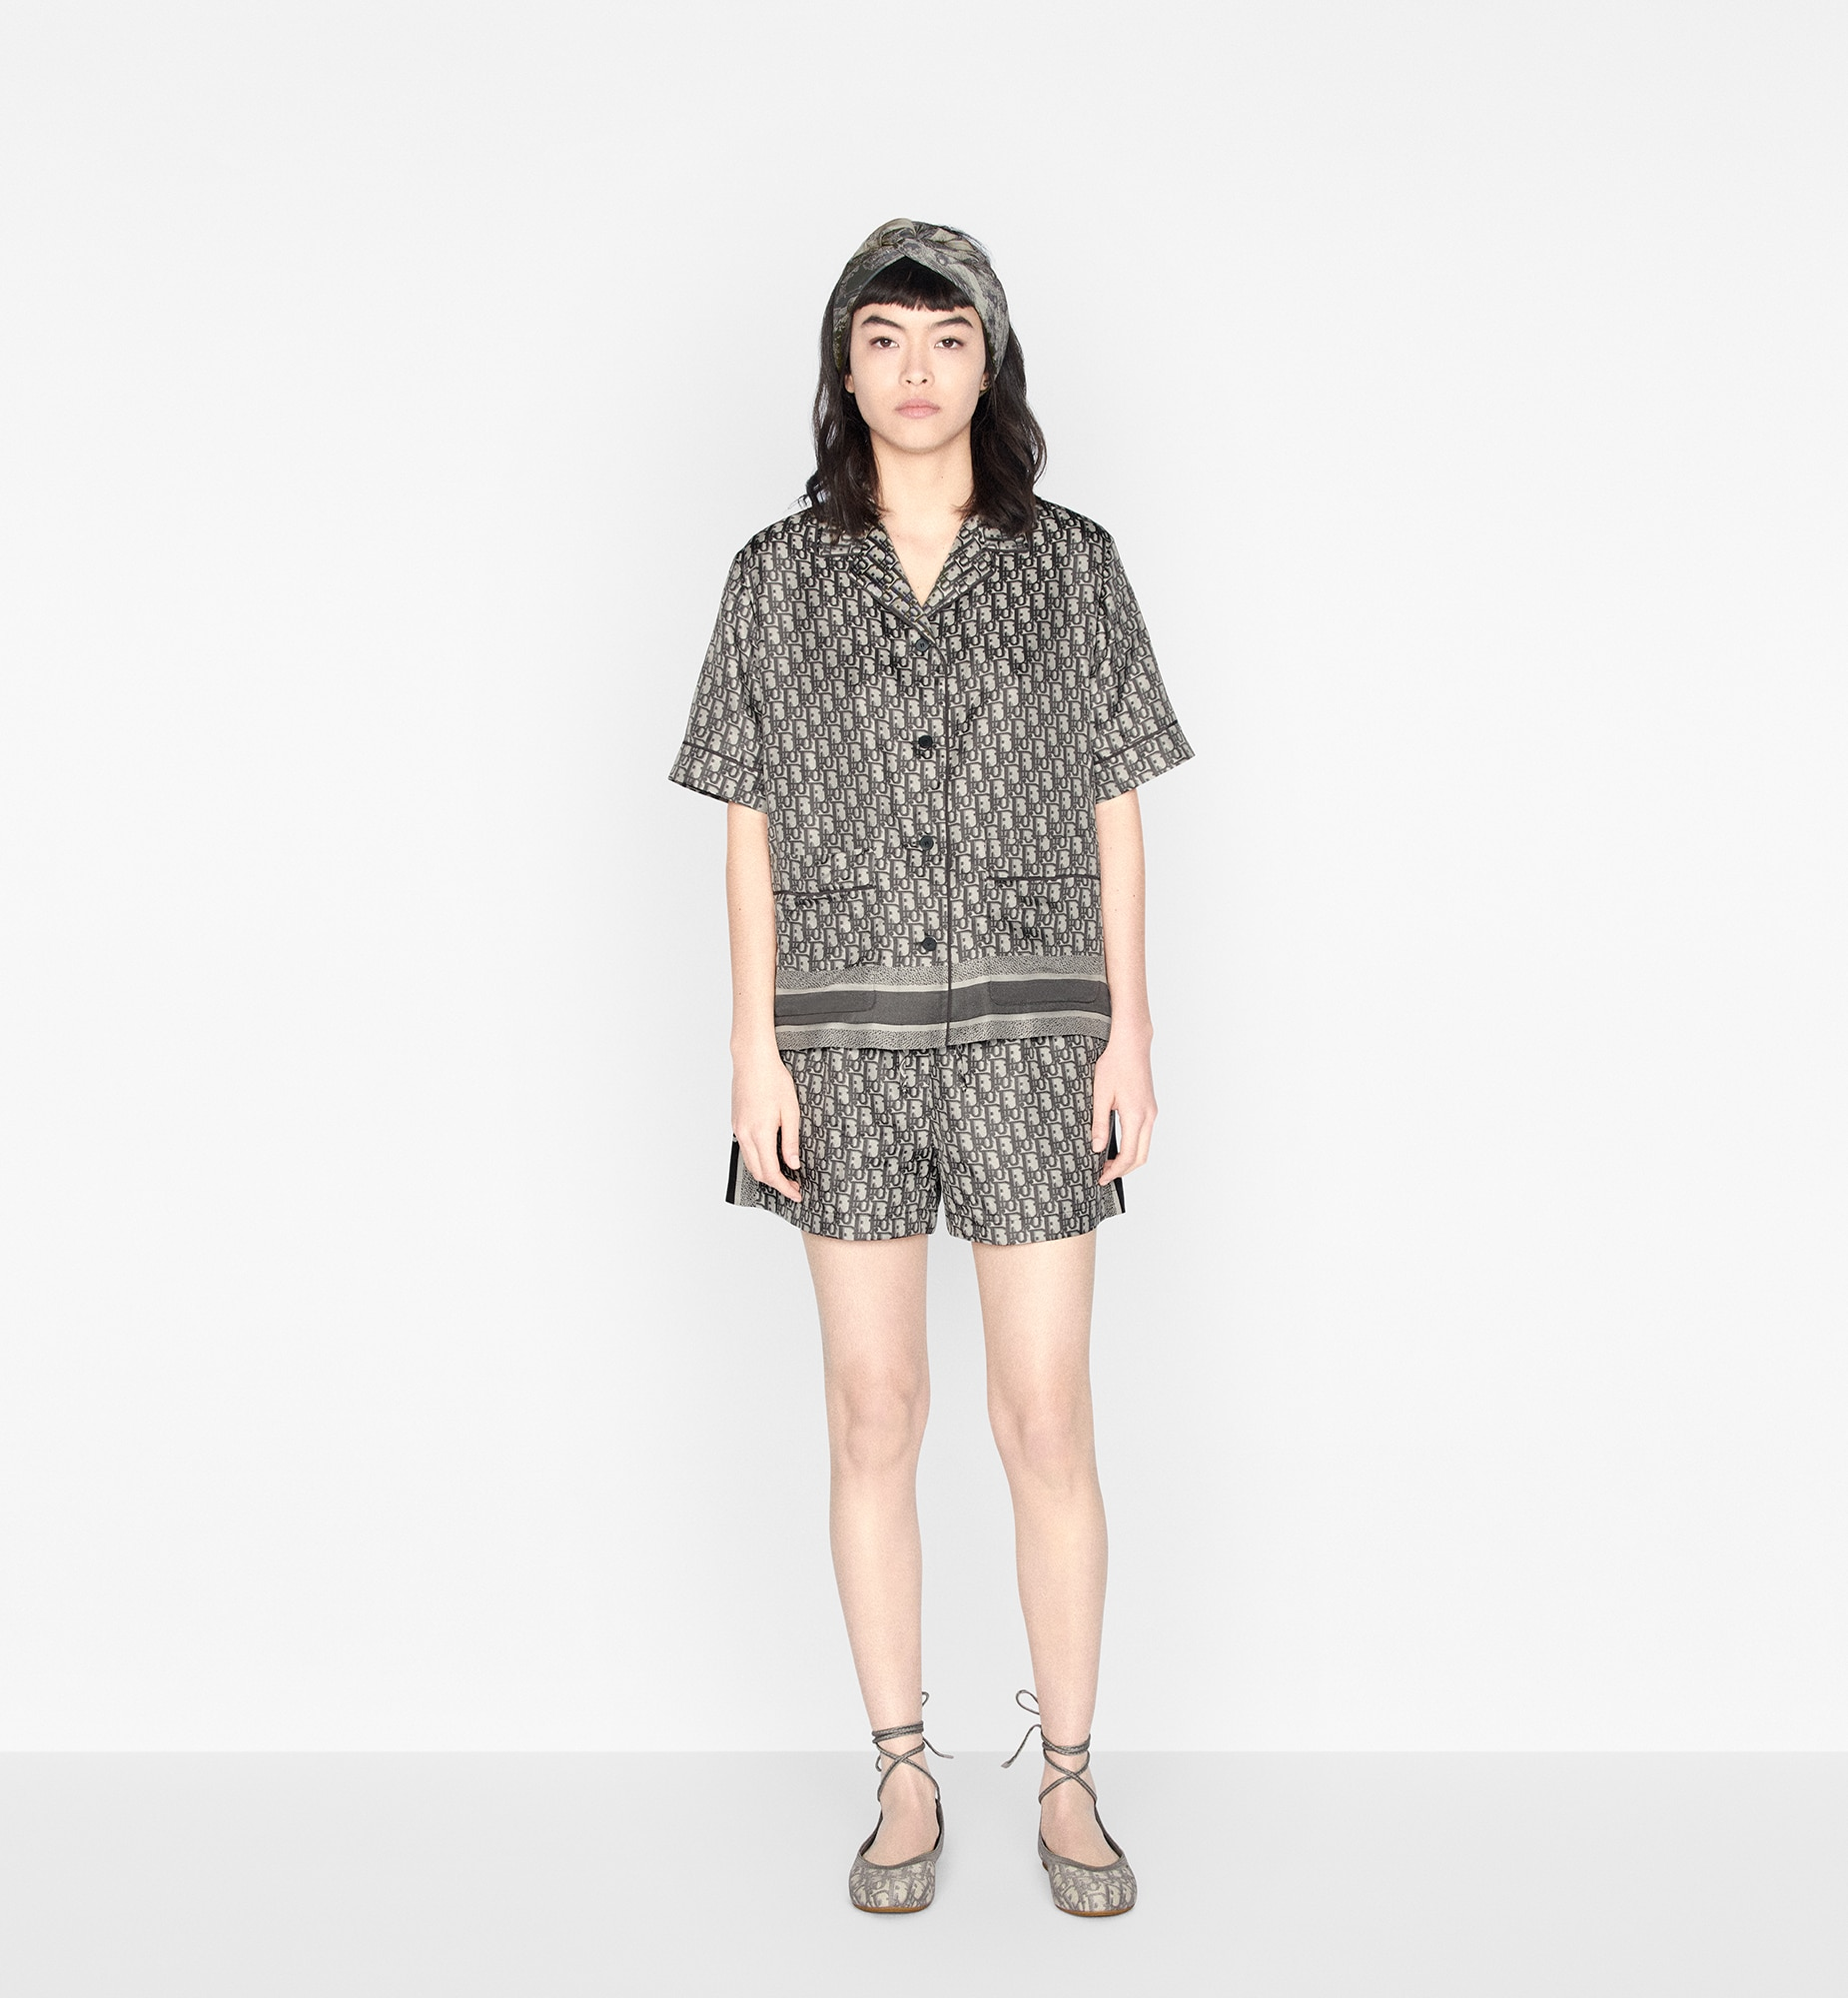 Dior Chez Moi Shorts aria_wornViewCropped aria_openGallery